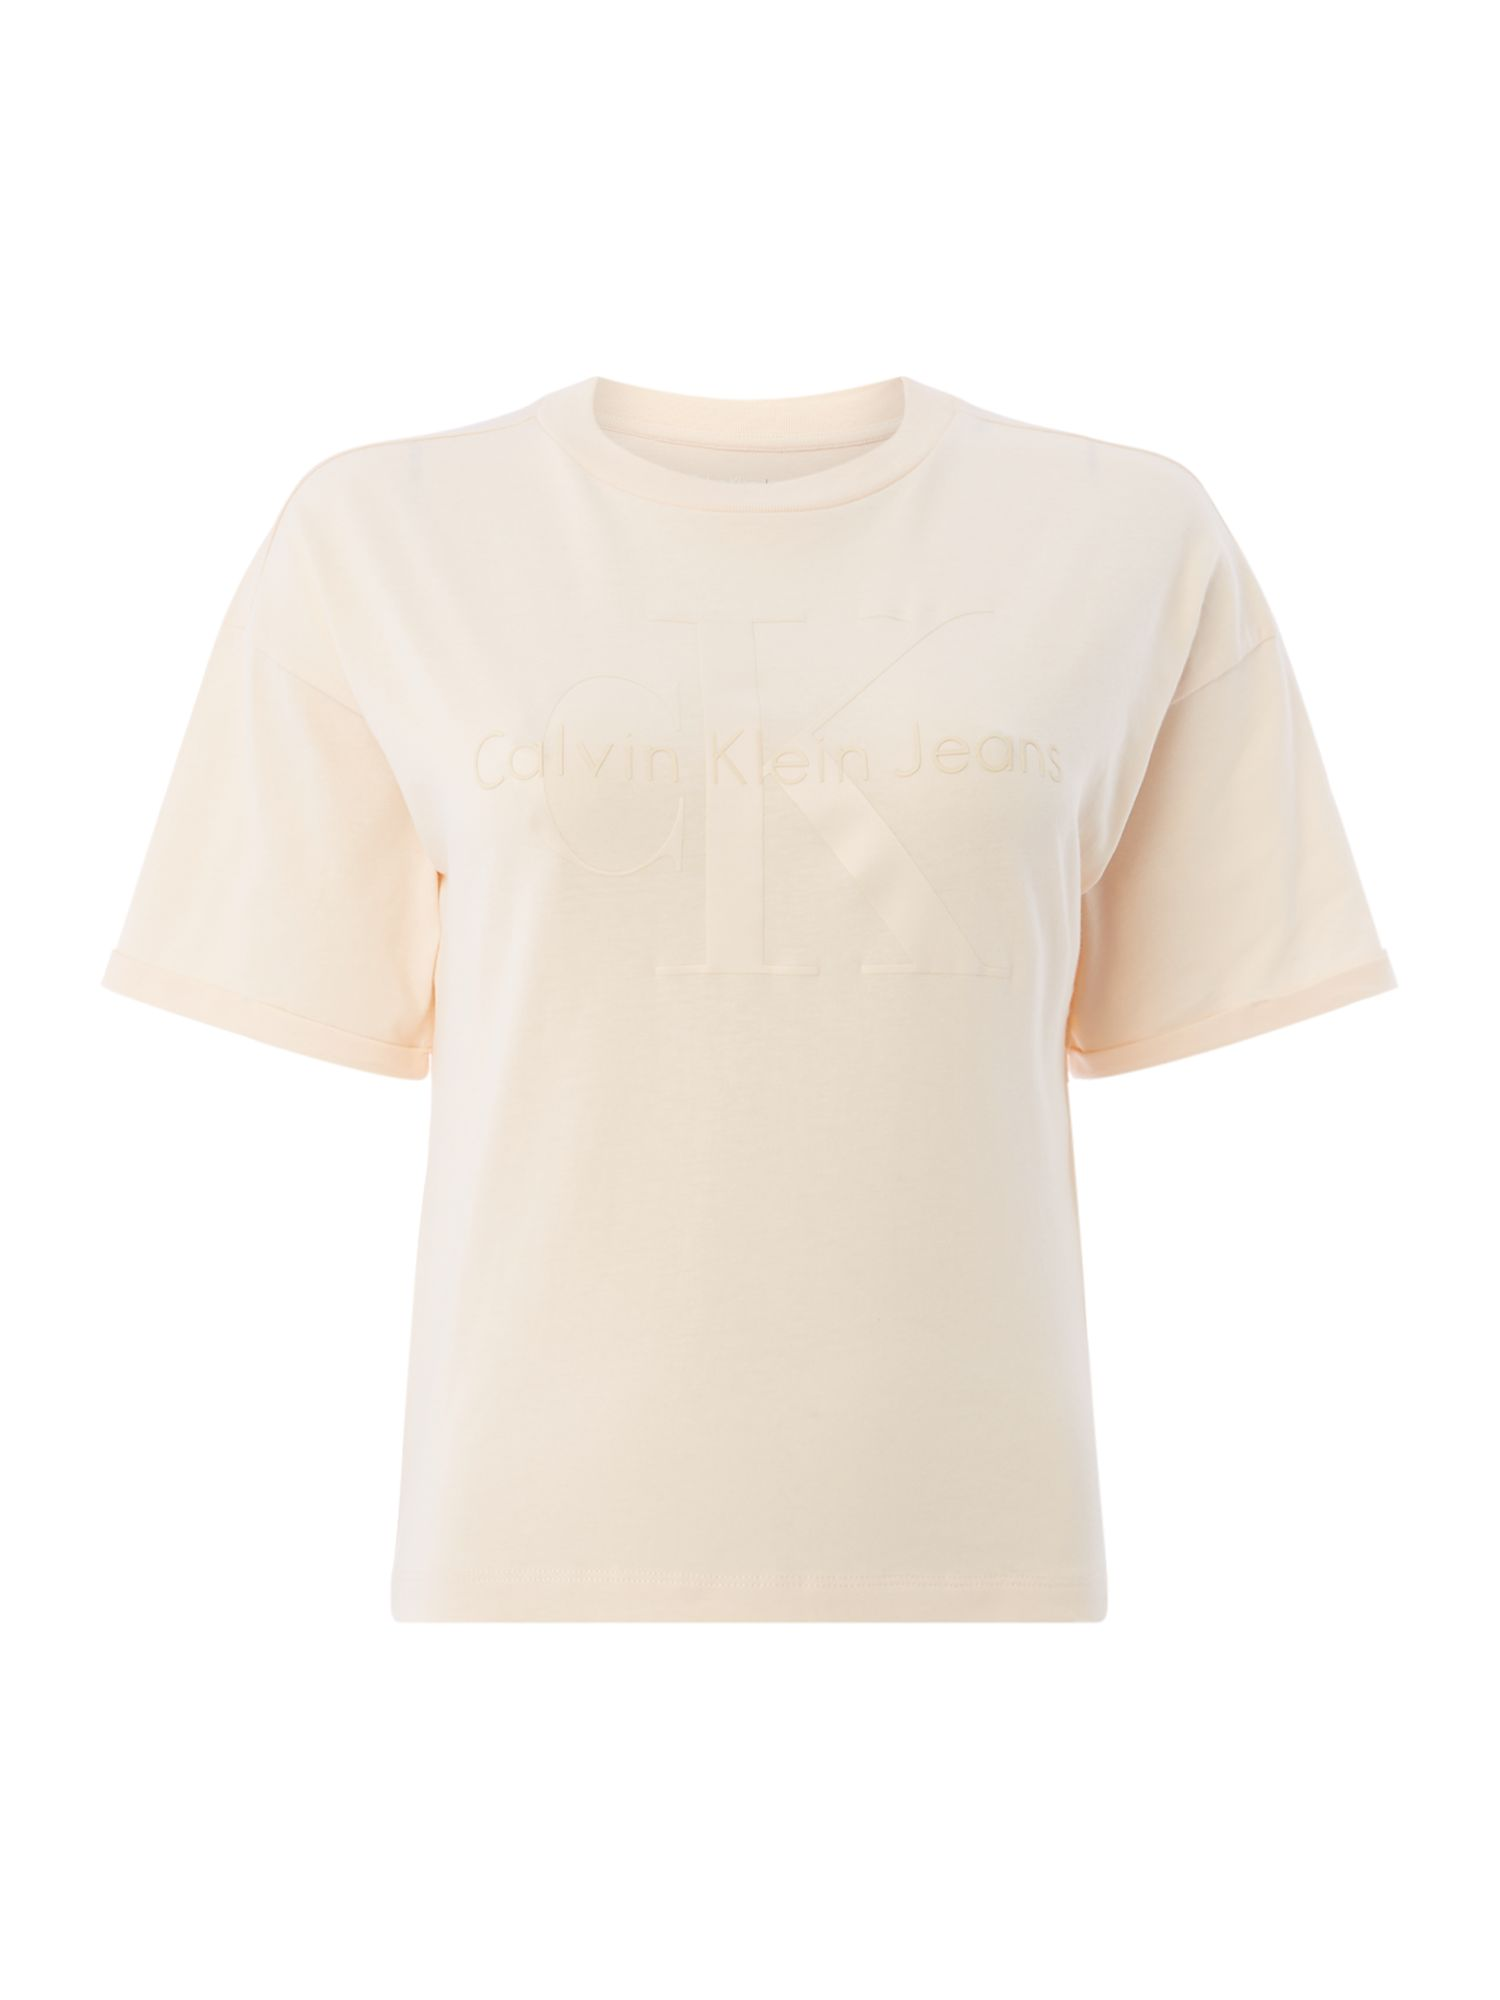 Calvin Klein Short Sleeves CK Logo T Shirt, Yellow